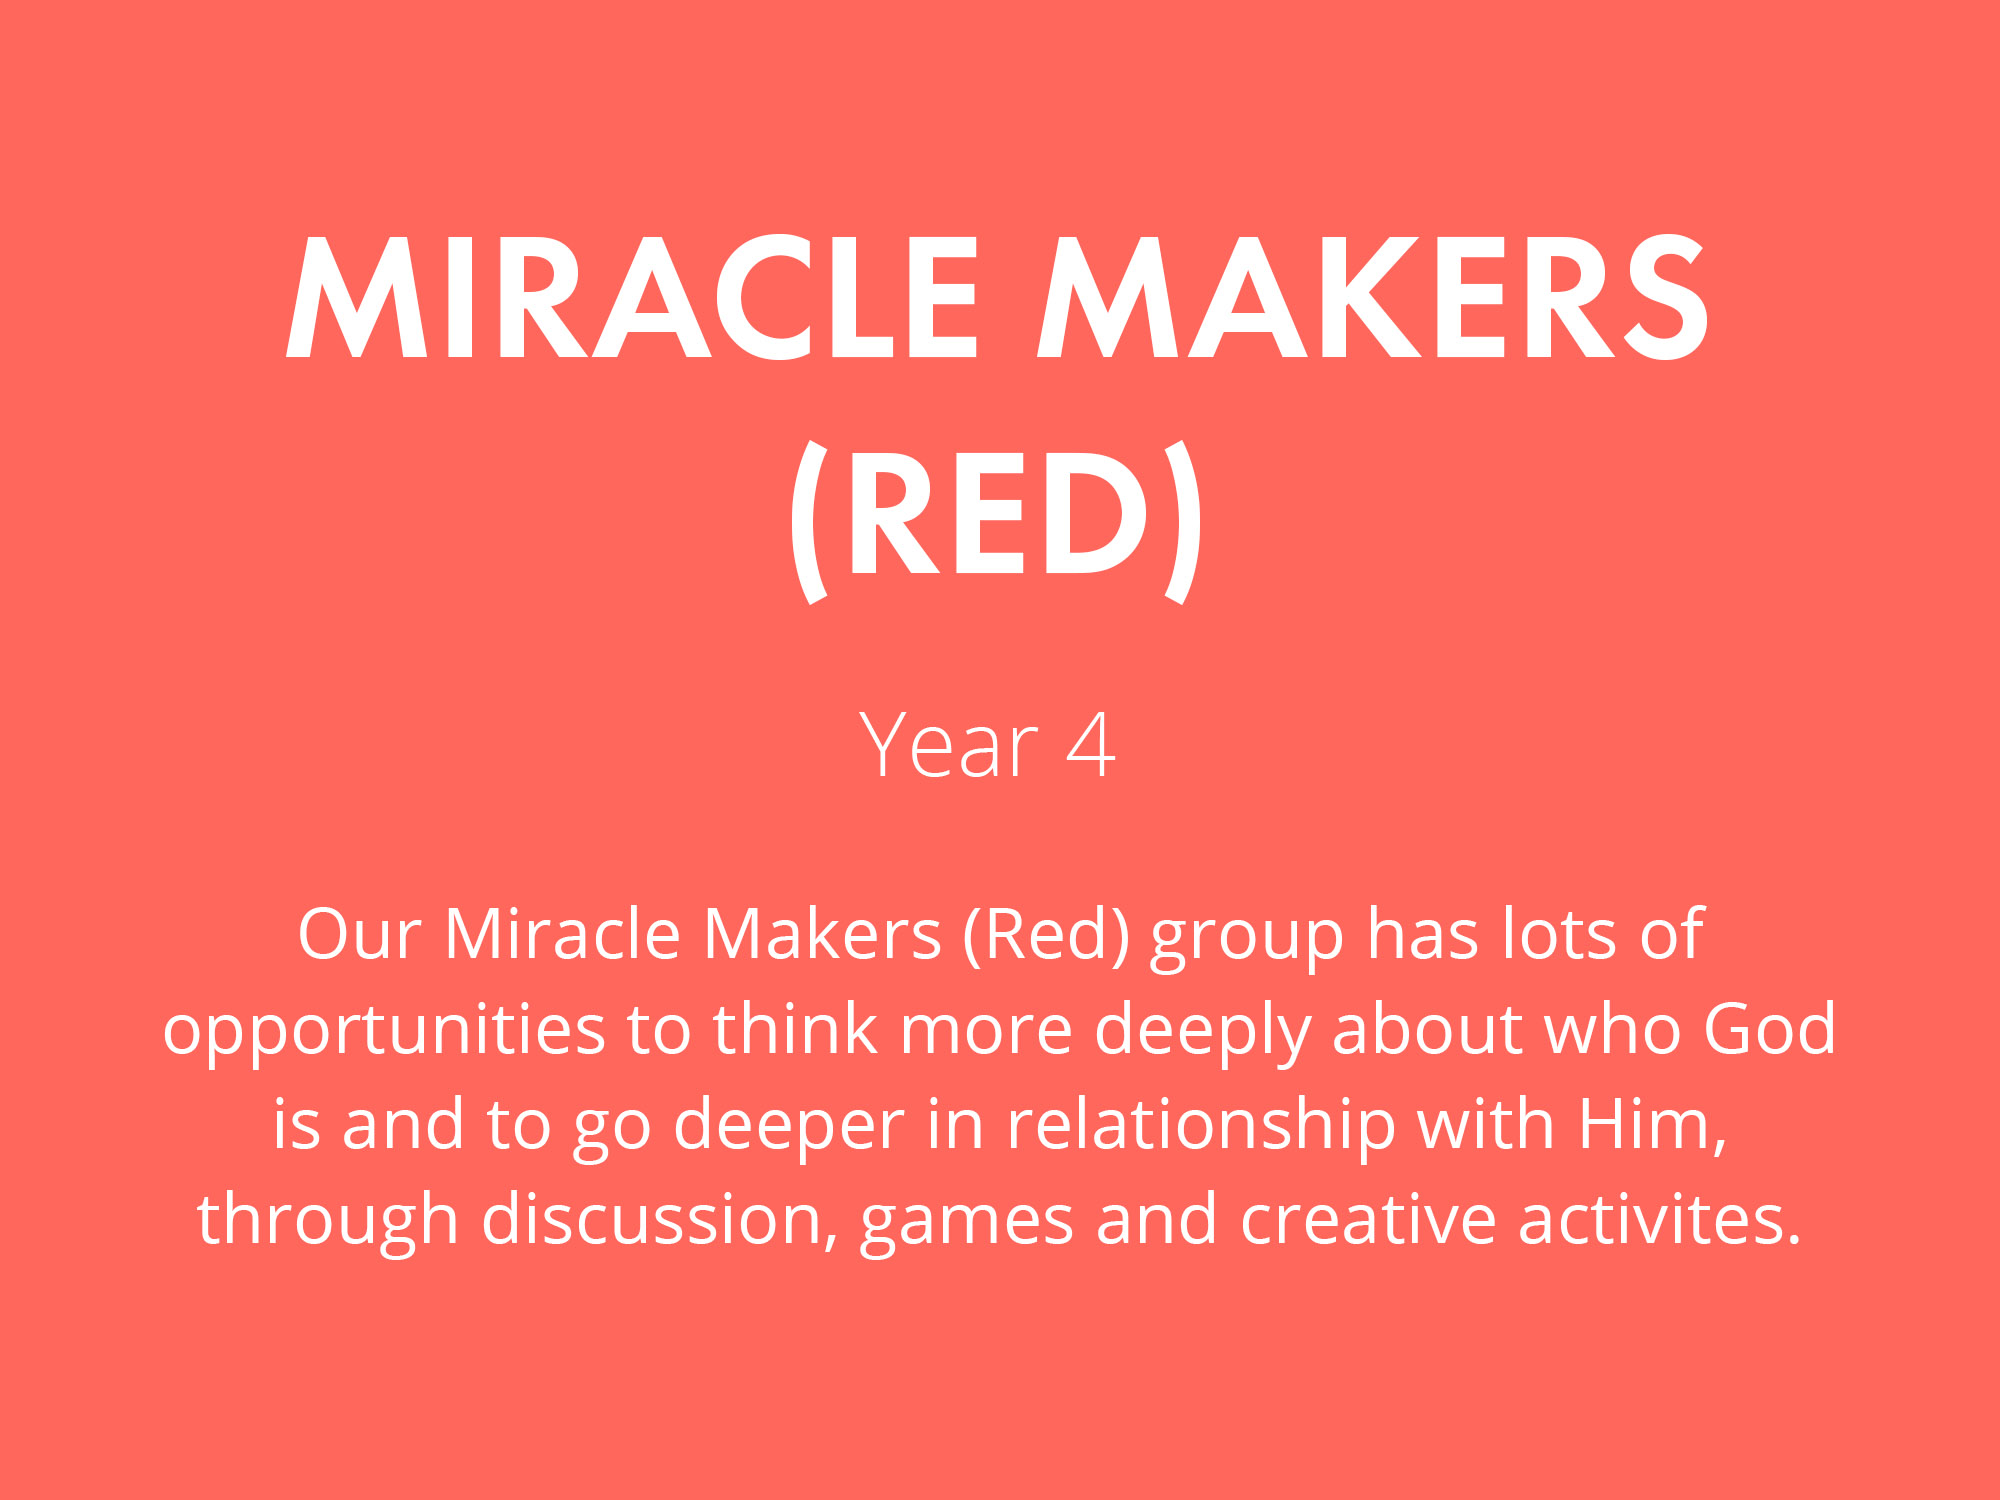 NEW-children-groups-test-miracle-red.jpg